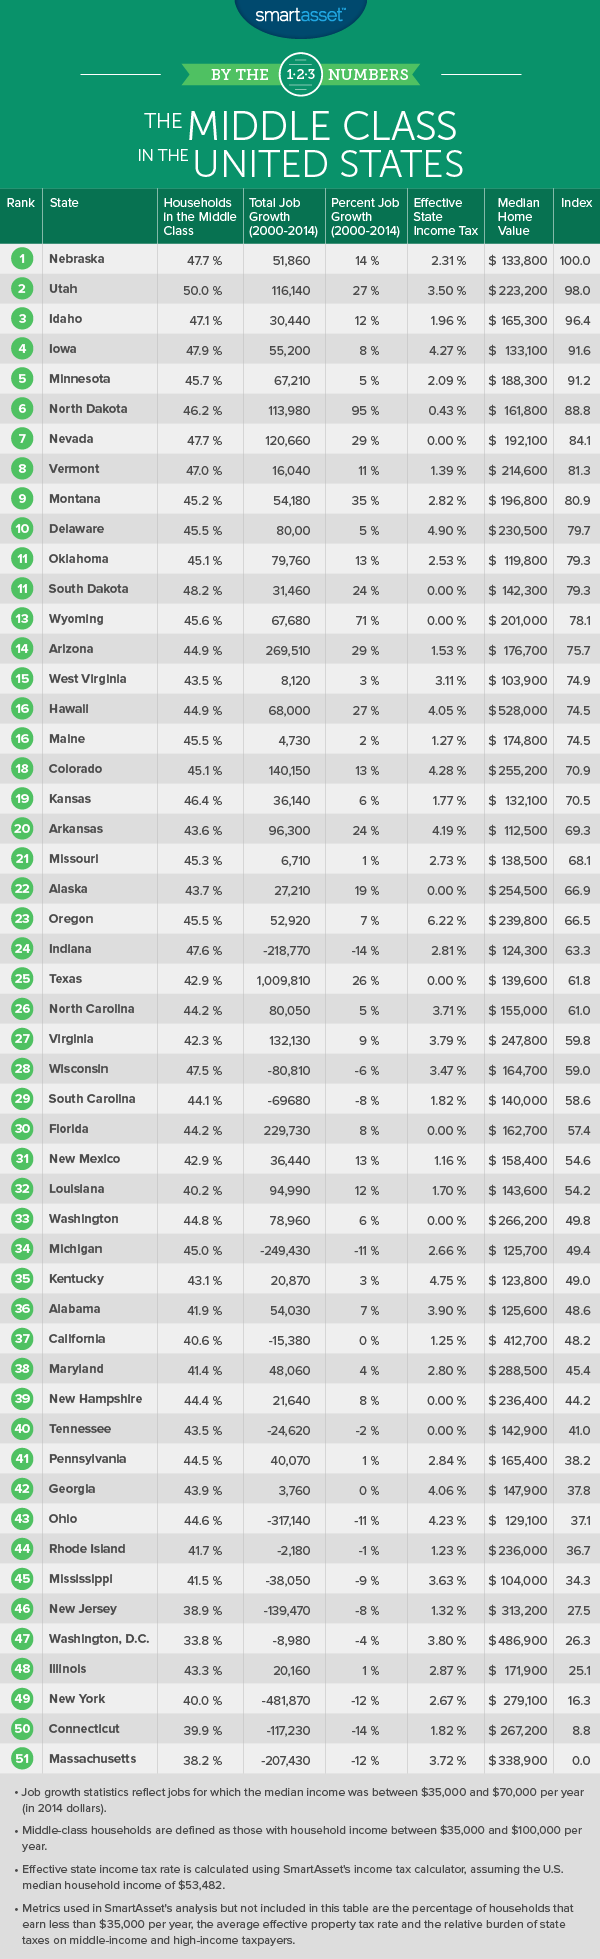 By the Numbers: The Middle Class in the United States